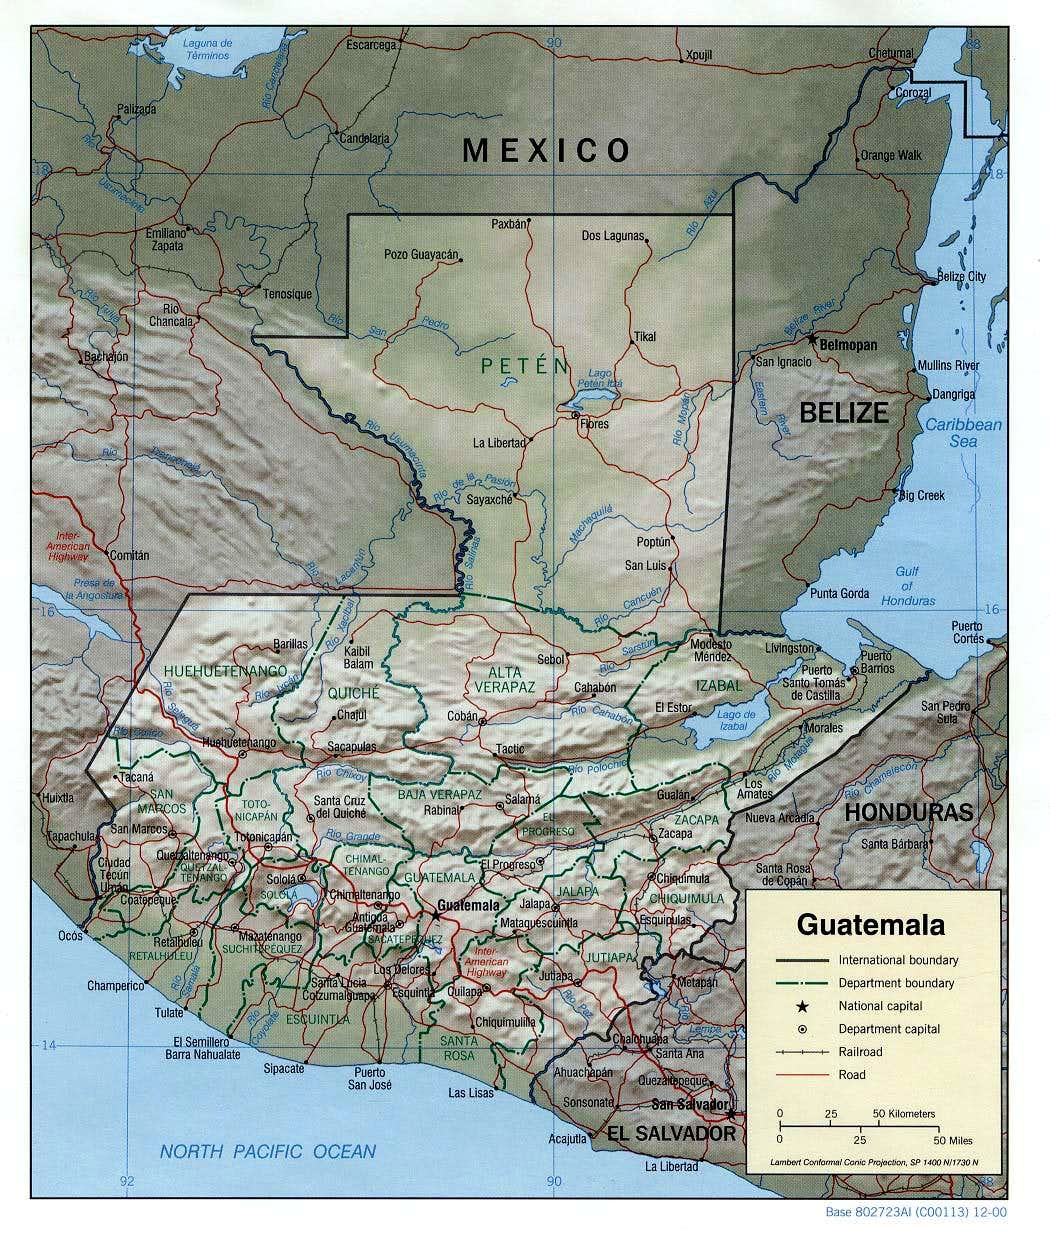 Guatemala Locations